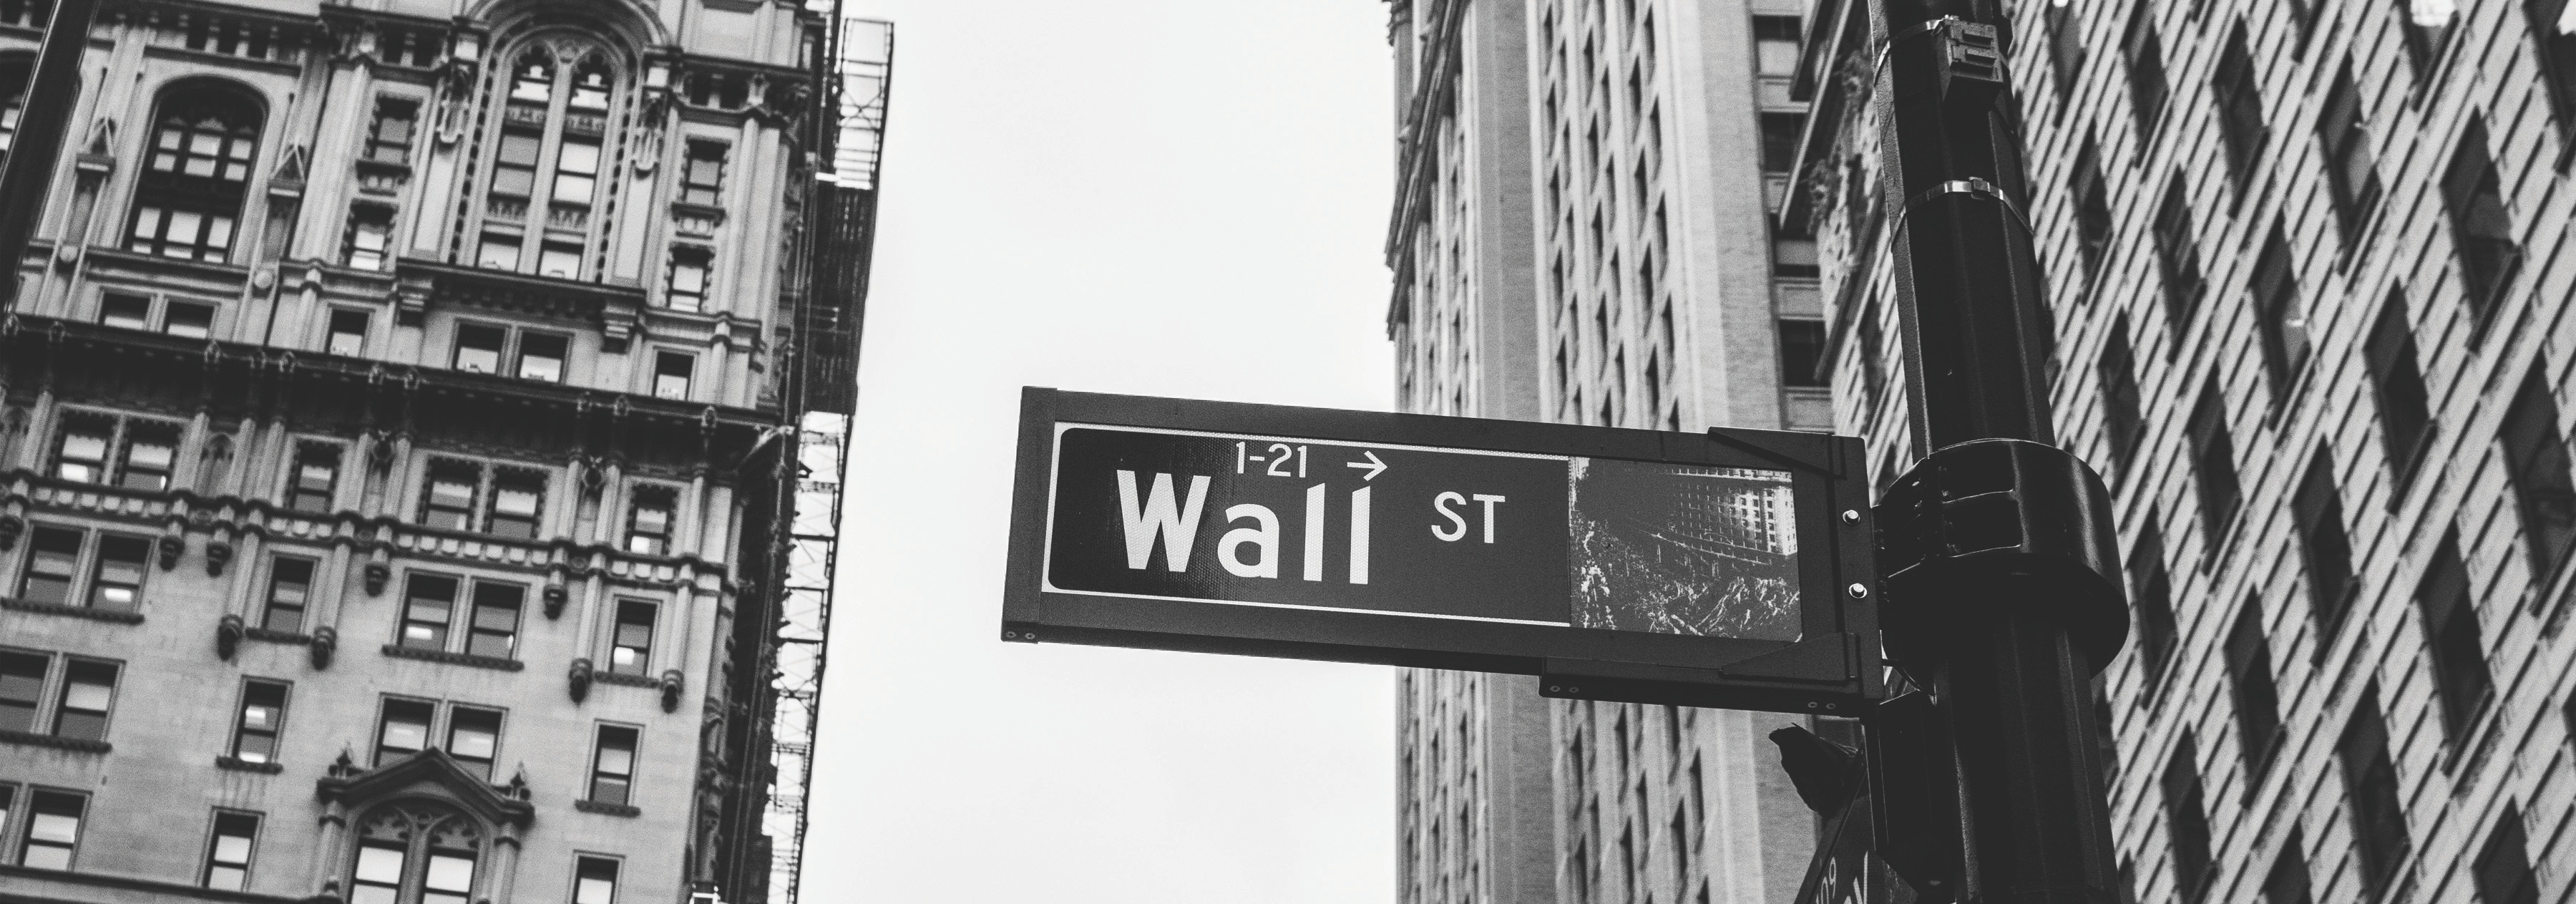 decorative image of Wall St. in NYC